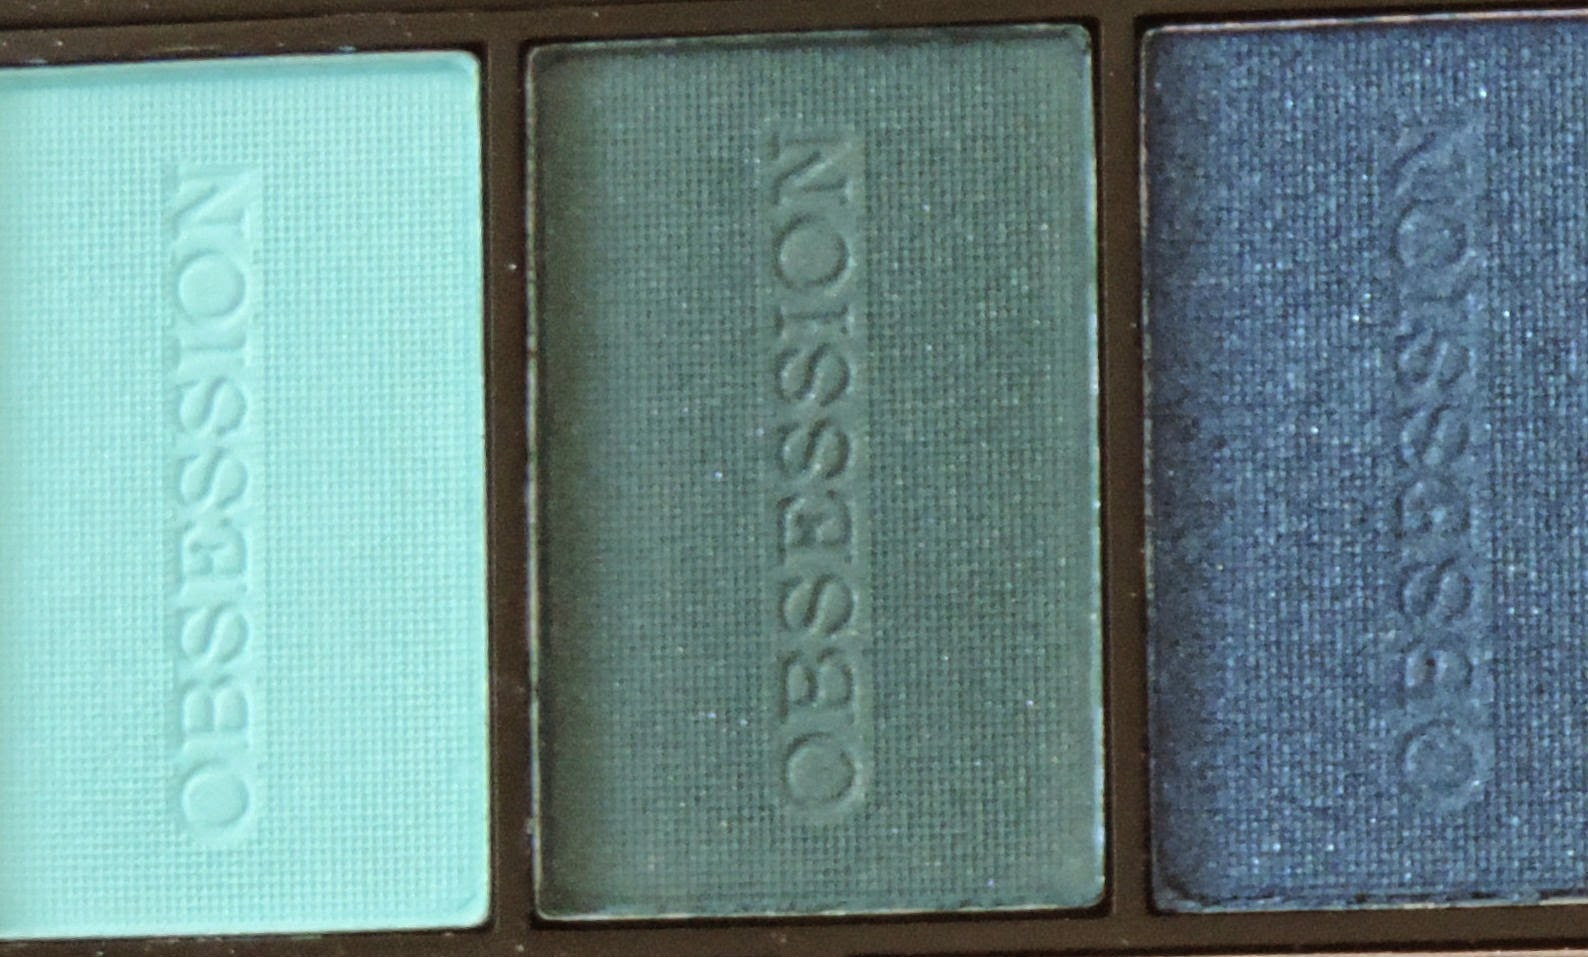 Makeup Revolution - I Heart Obsession Wild Is The Wind Palette